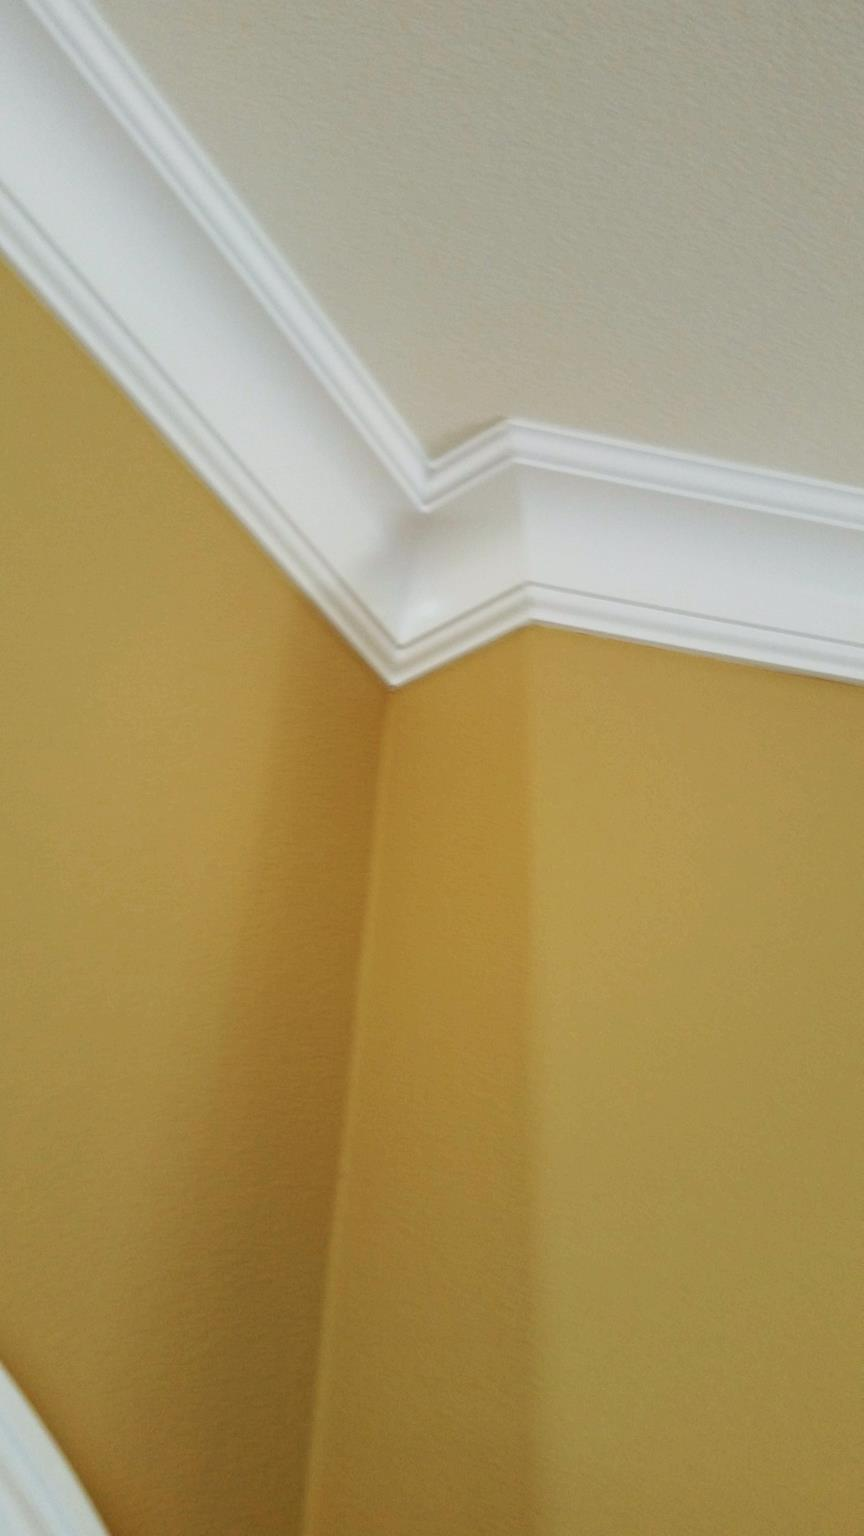 Crown Moulding Gallery | Crown Moulding Designs